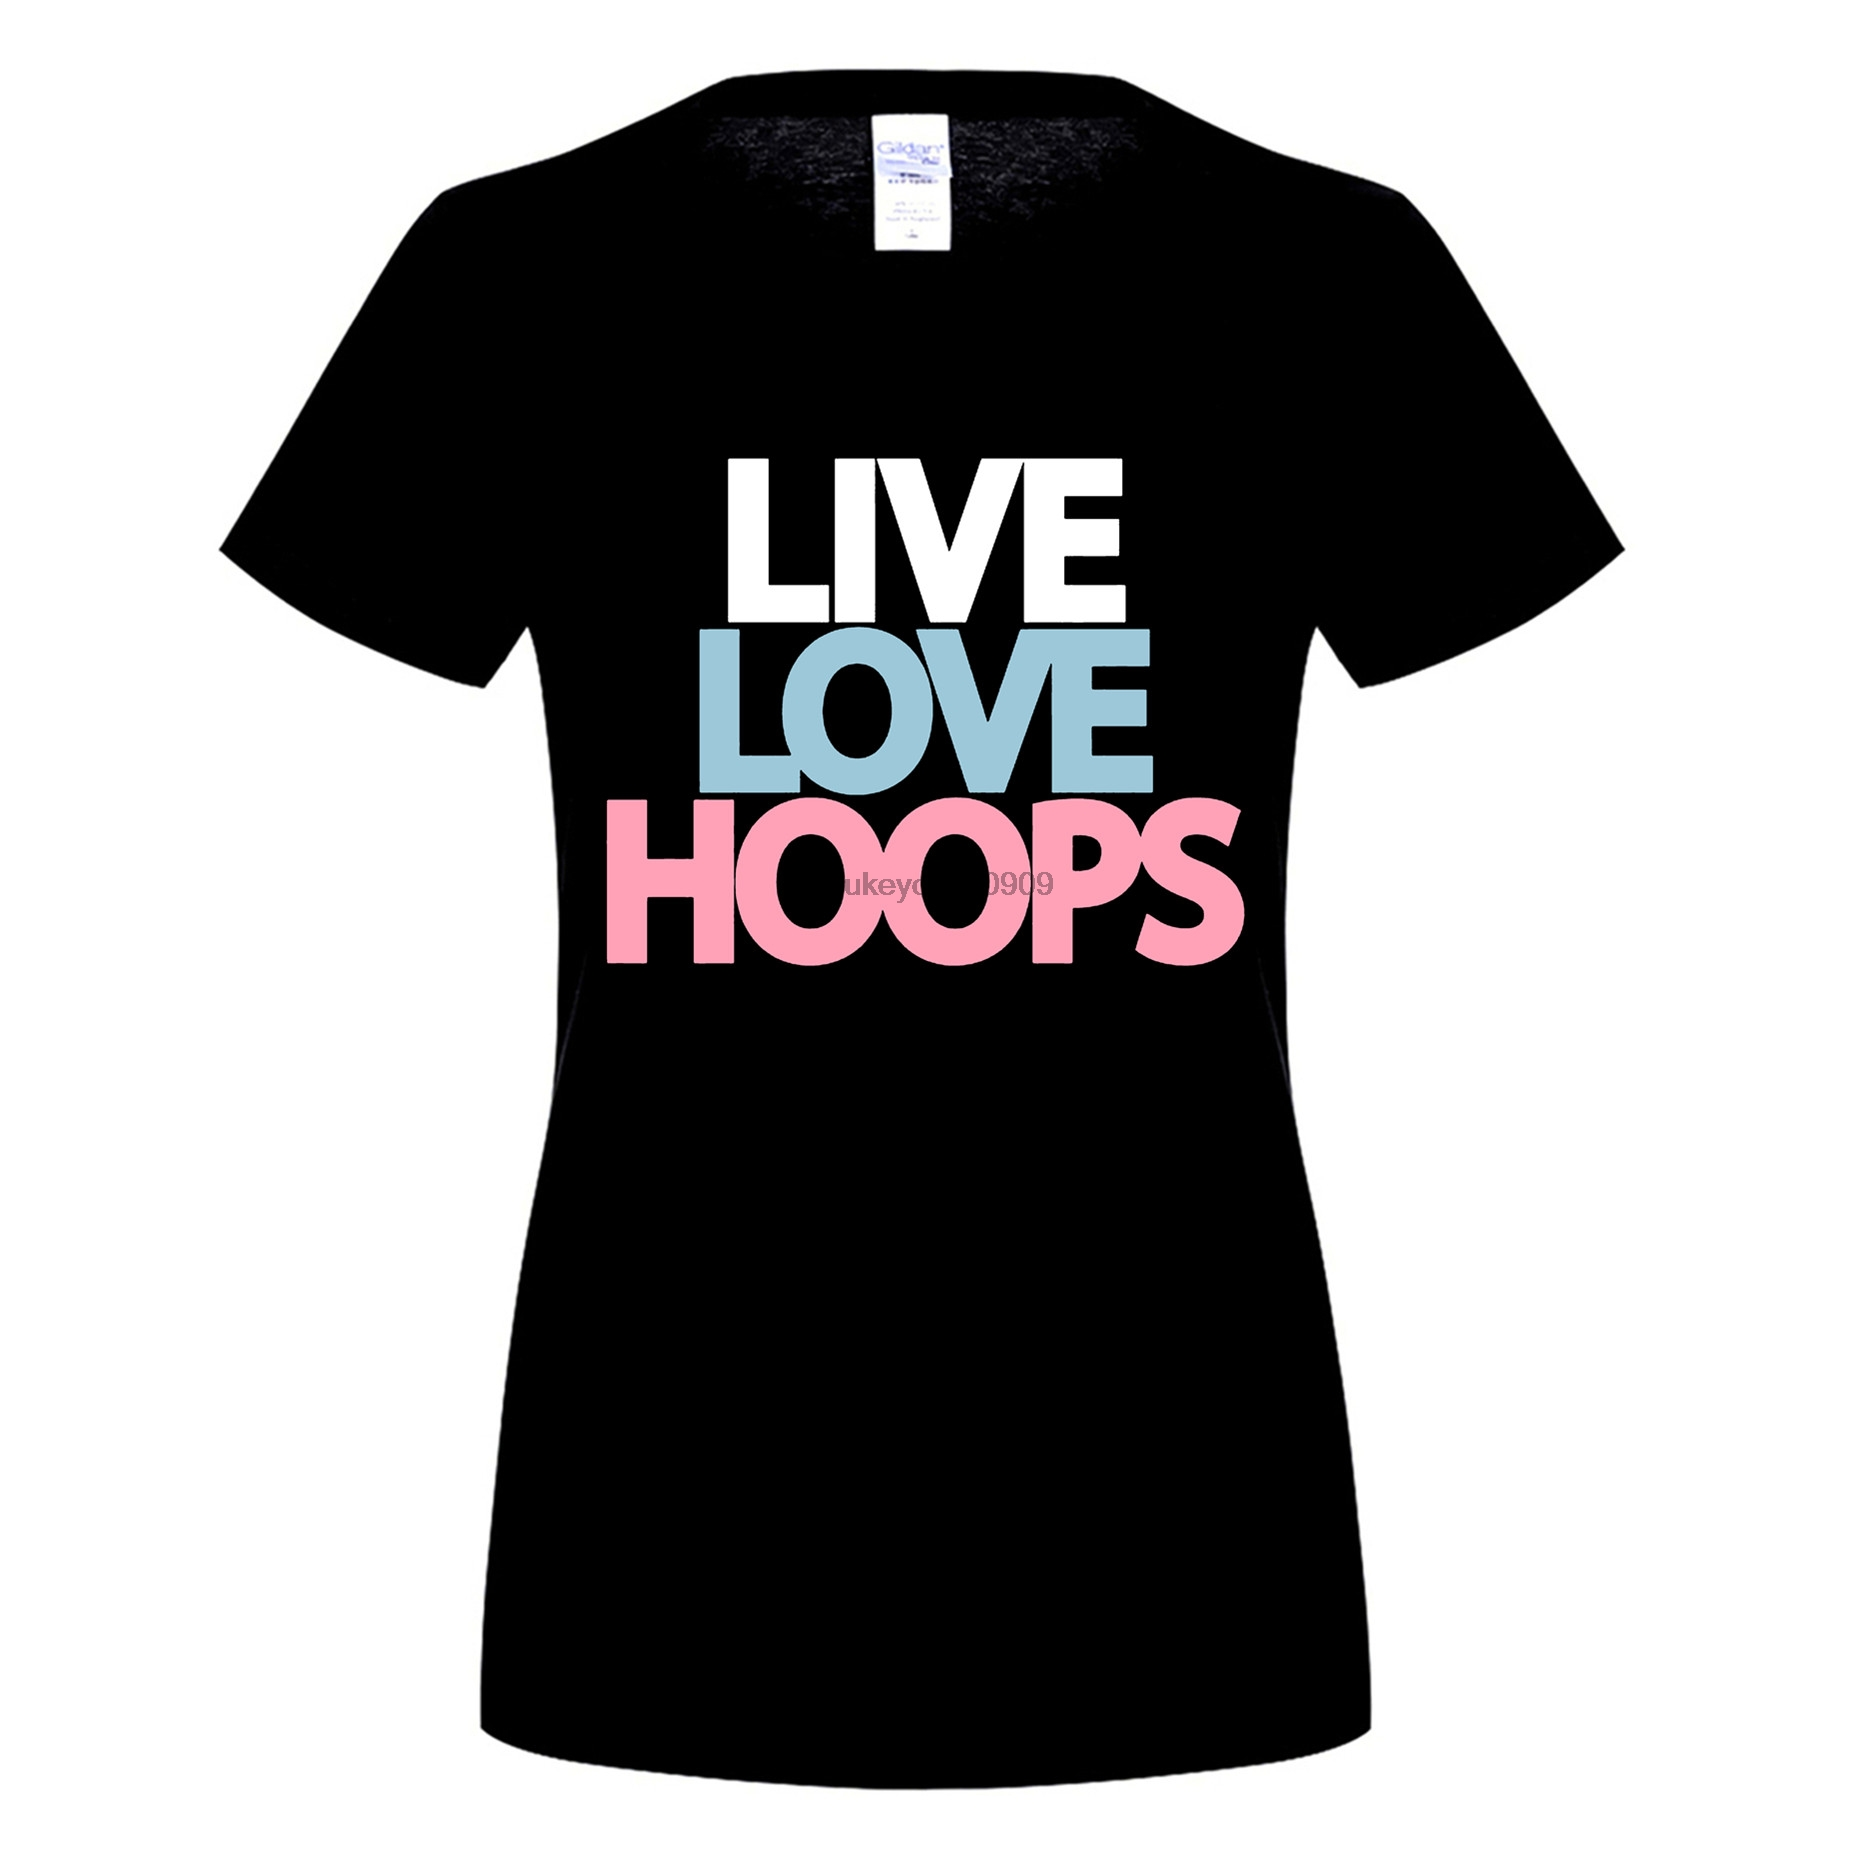 GILDAN Basketballer Live Love Hoops s T-Shirt Summer Funny Print Fe T-Shirts Slim Funny Fashion Cotton Casual Shirt